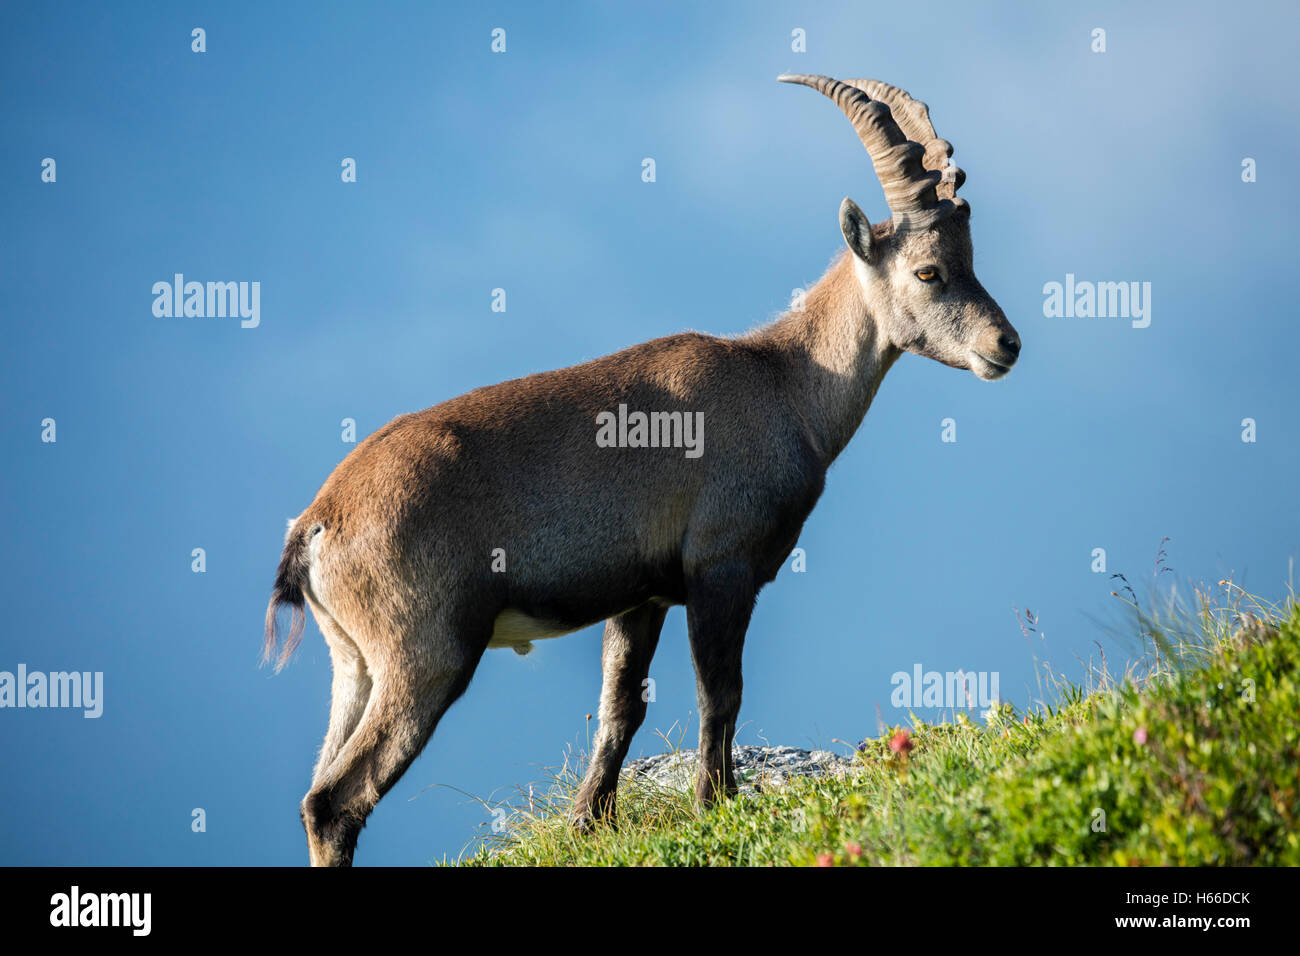 Male ibex in the Chamonix Valley, Haute Savoie, French Alps, France. - Stock Image